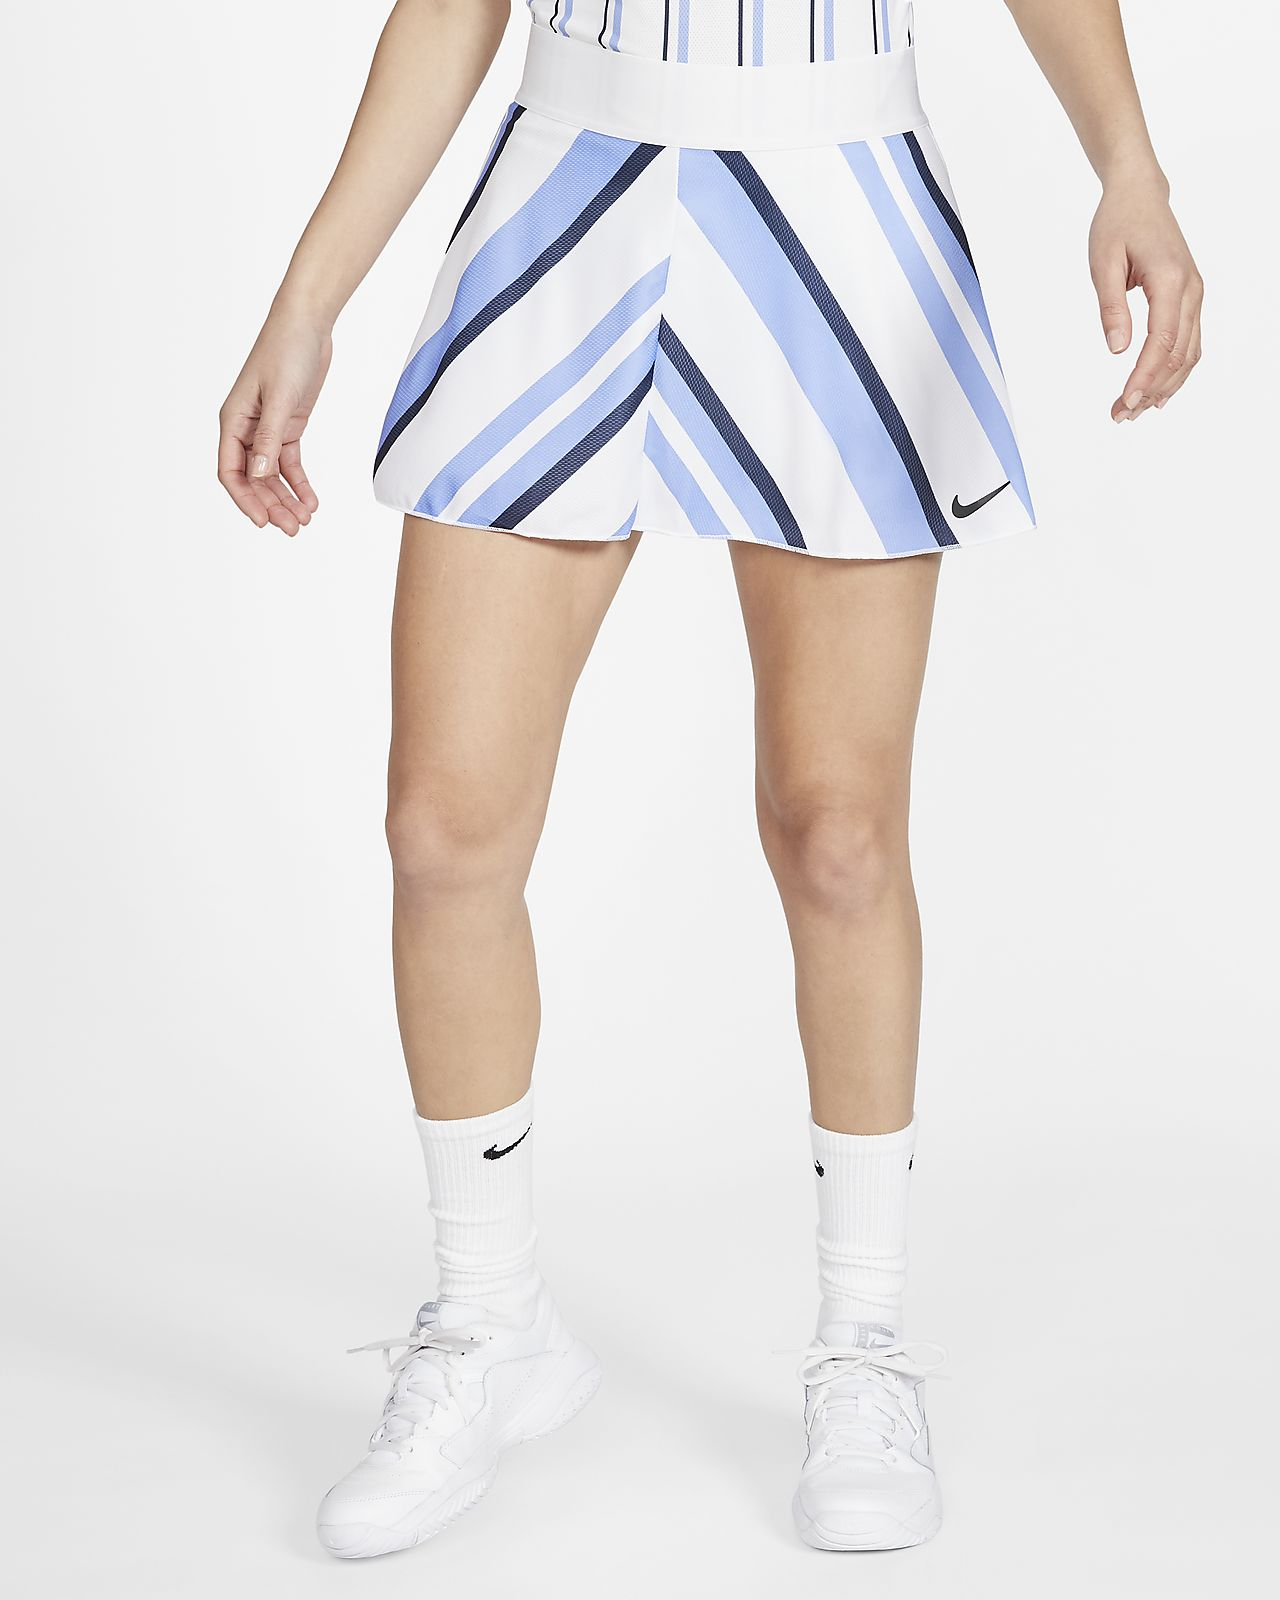 NikeCourt Dri-FIT Tennisrok met print